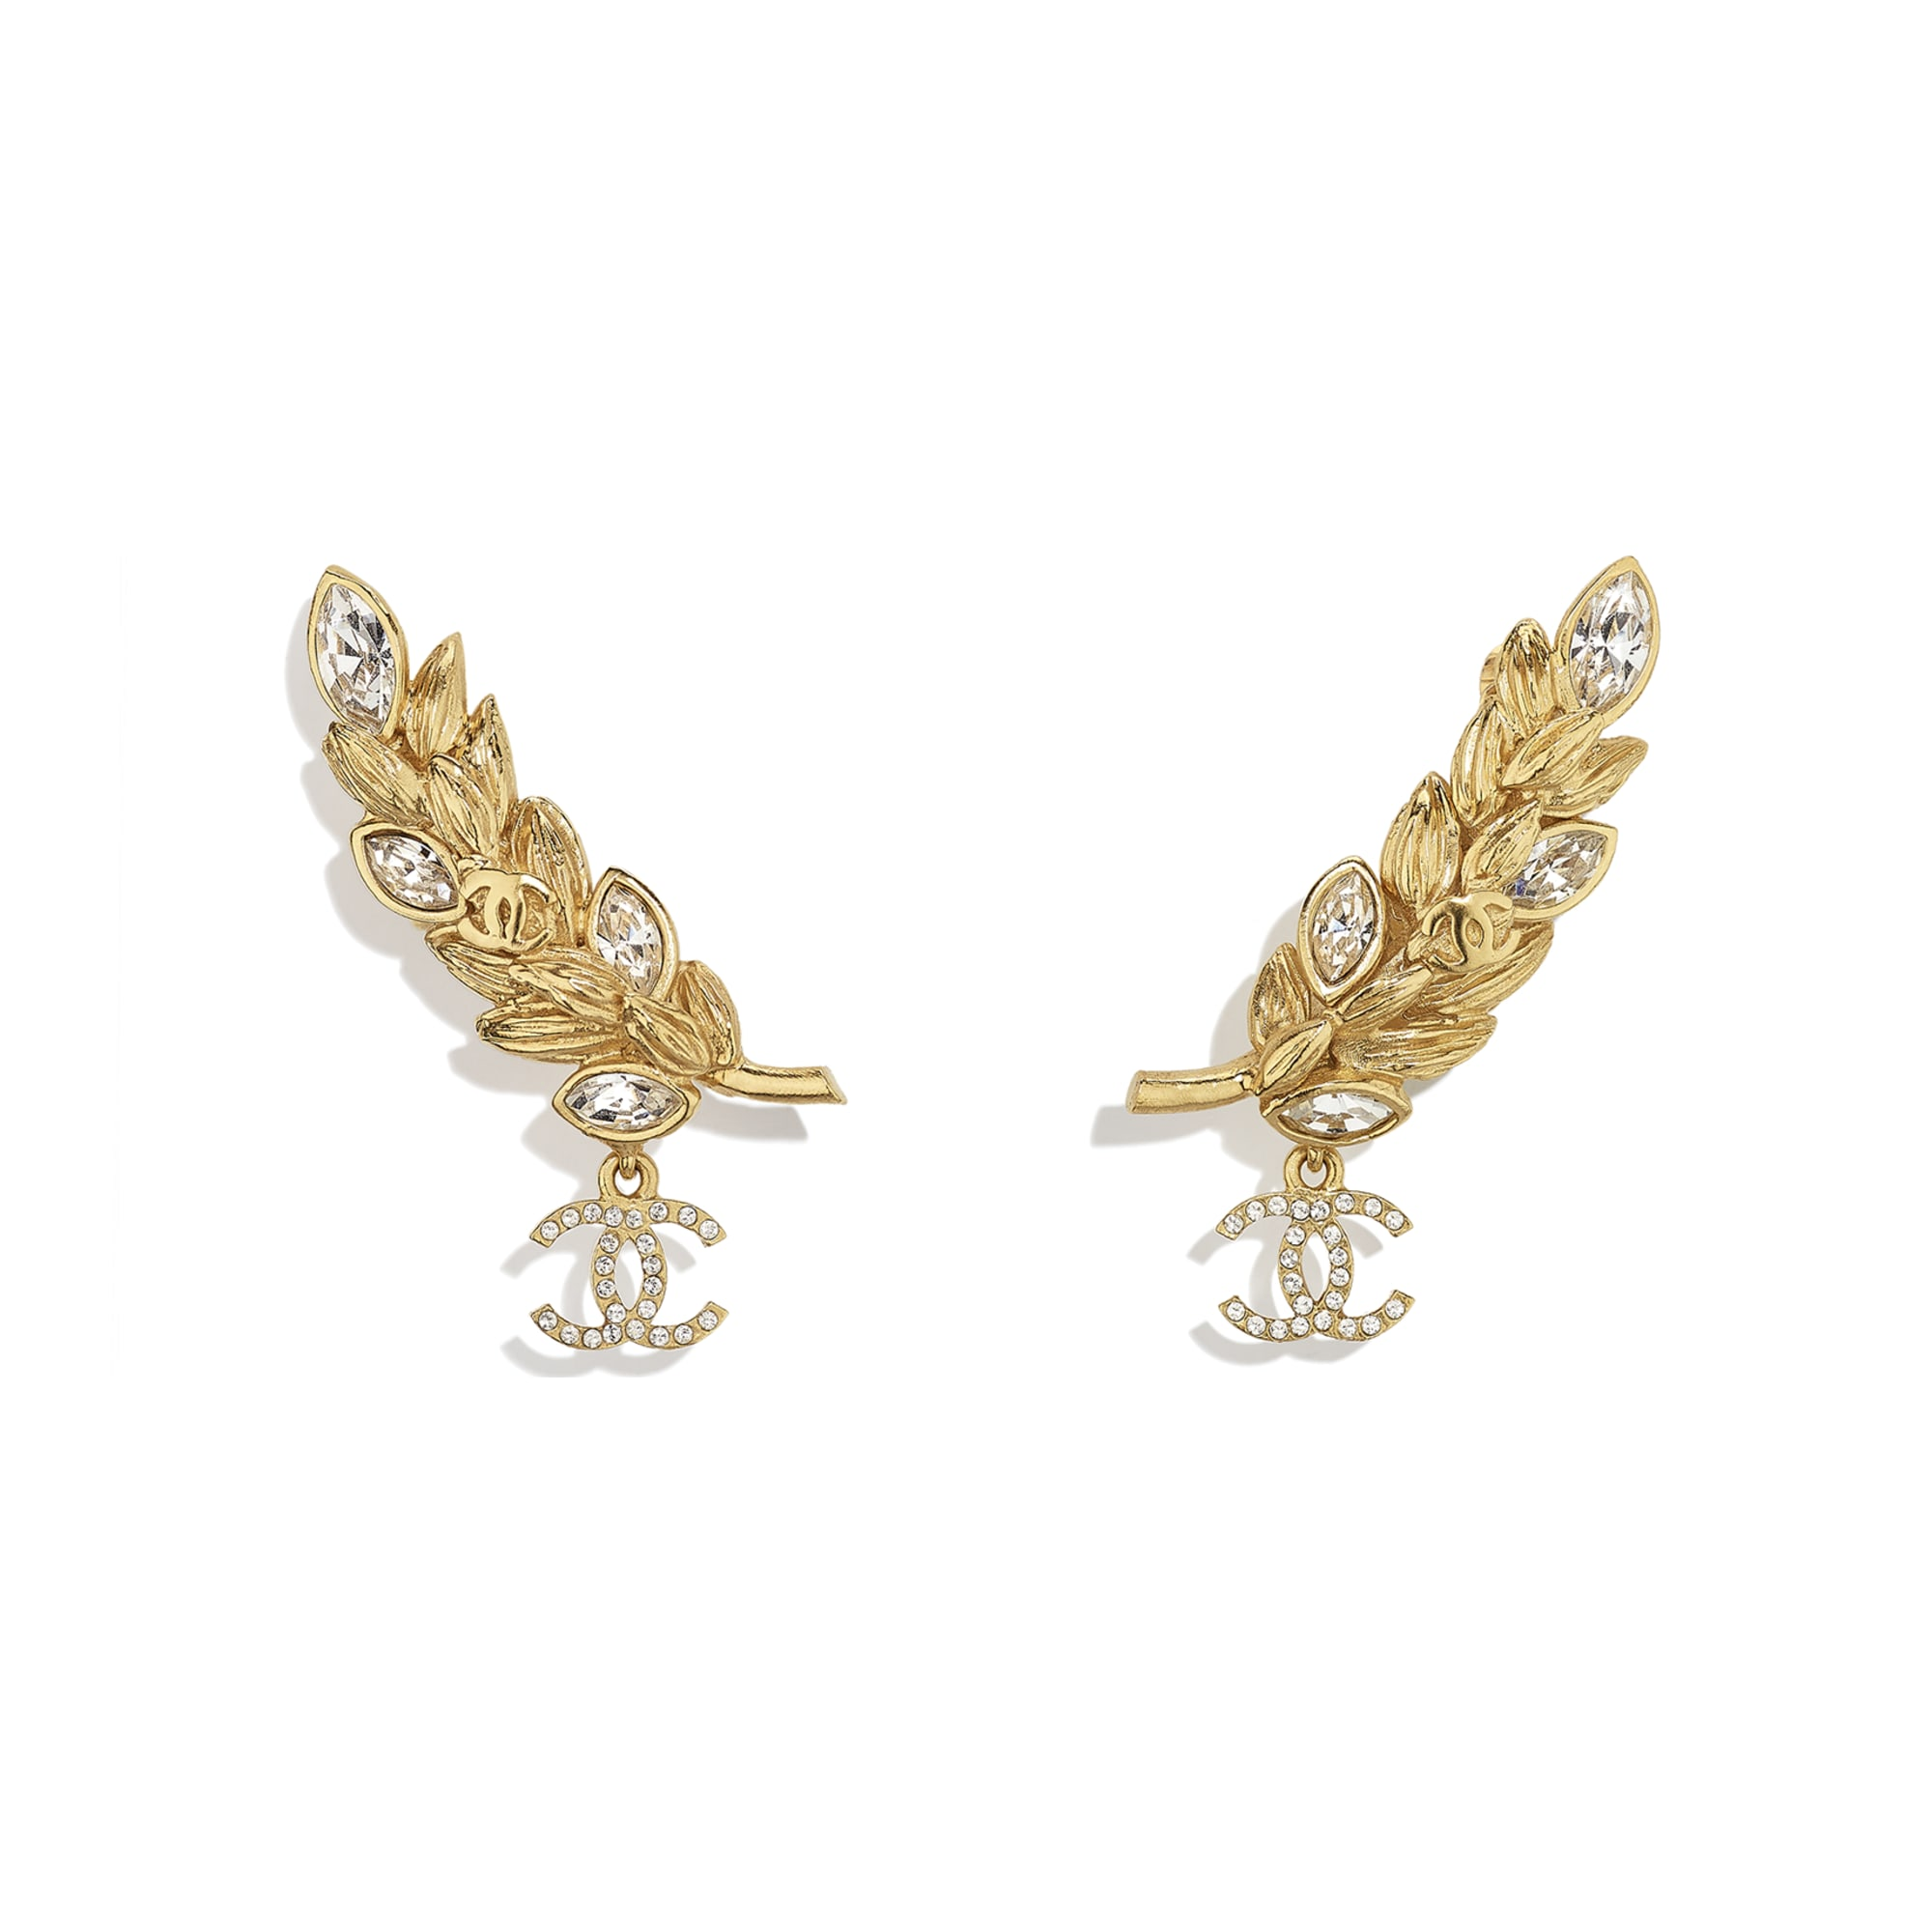 Clip-On Earrings - Gold & Crystal - Metal & Diamantés - CHANEL - Default view - see standard sized version